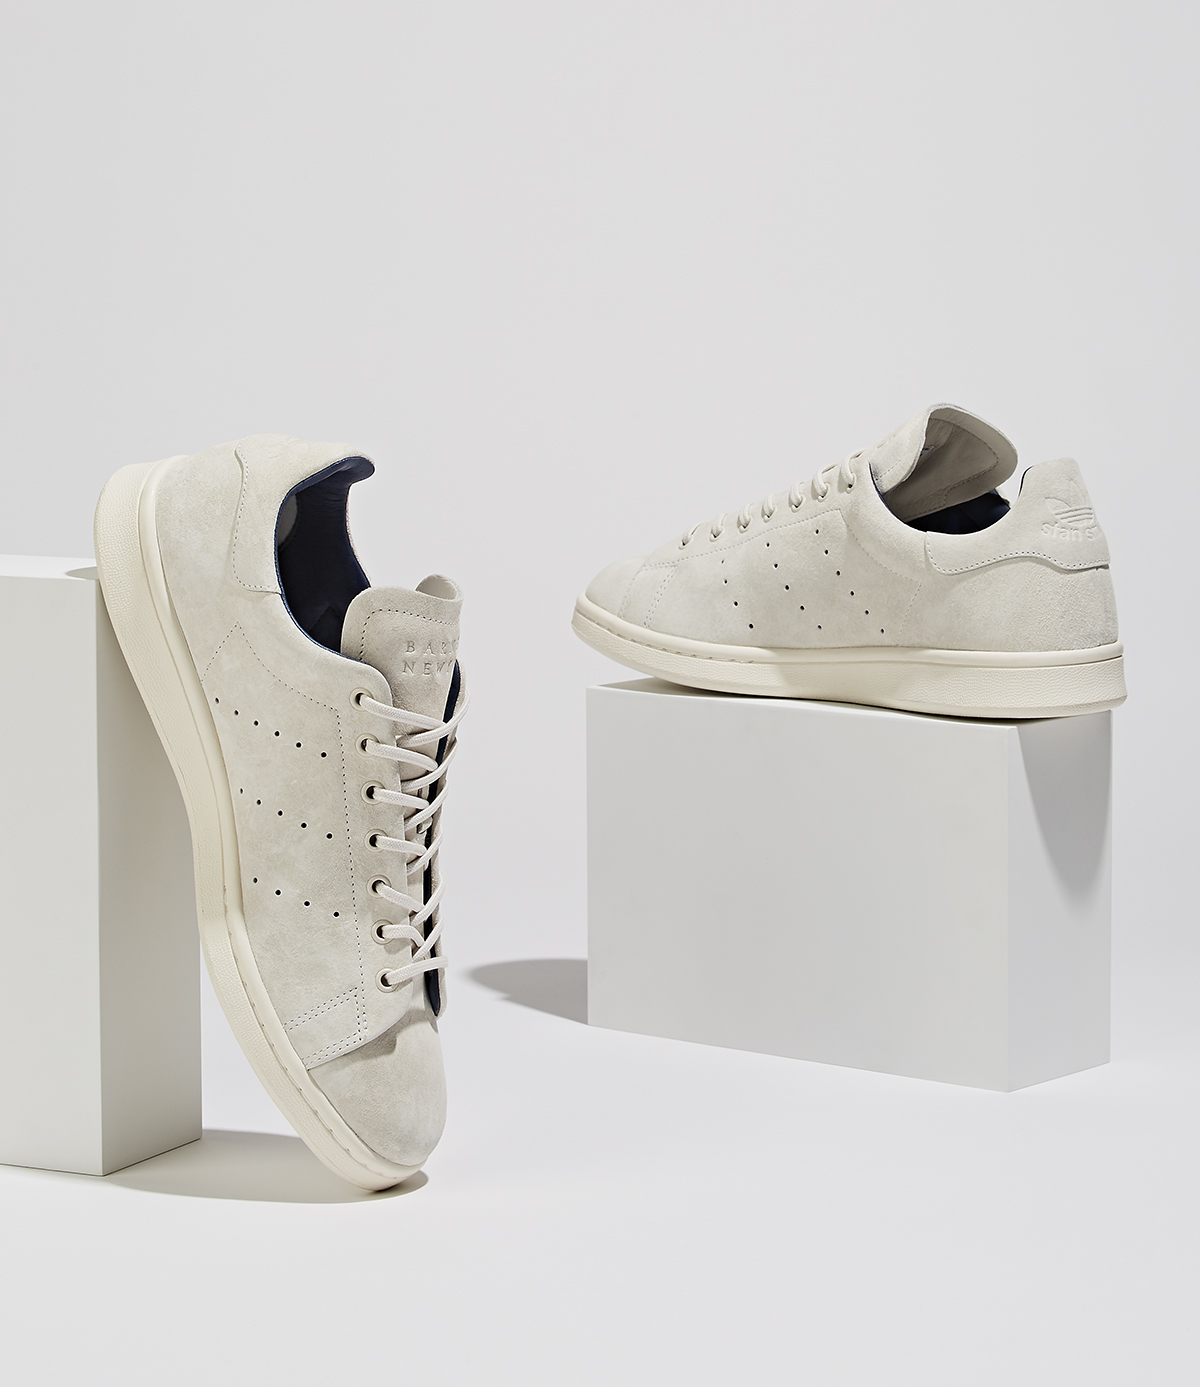 BNY Sole Series : Adidas Sneakers